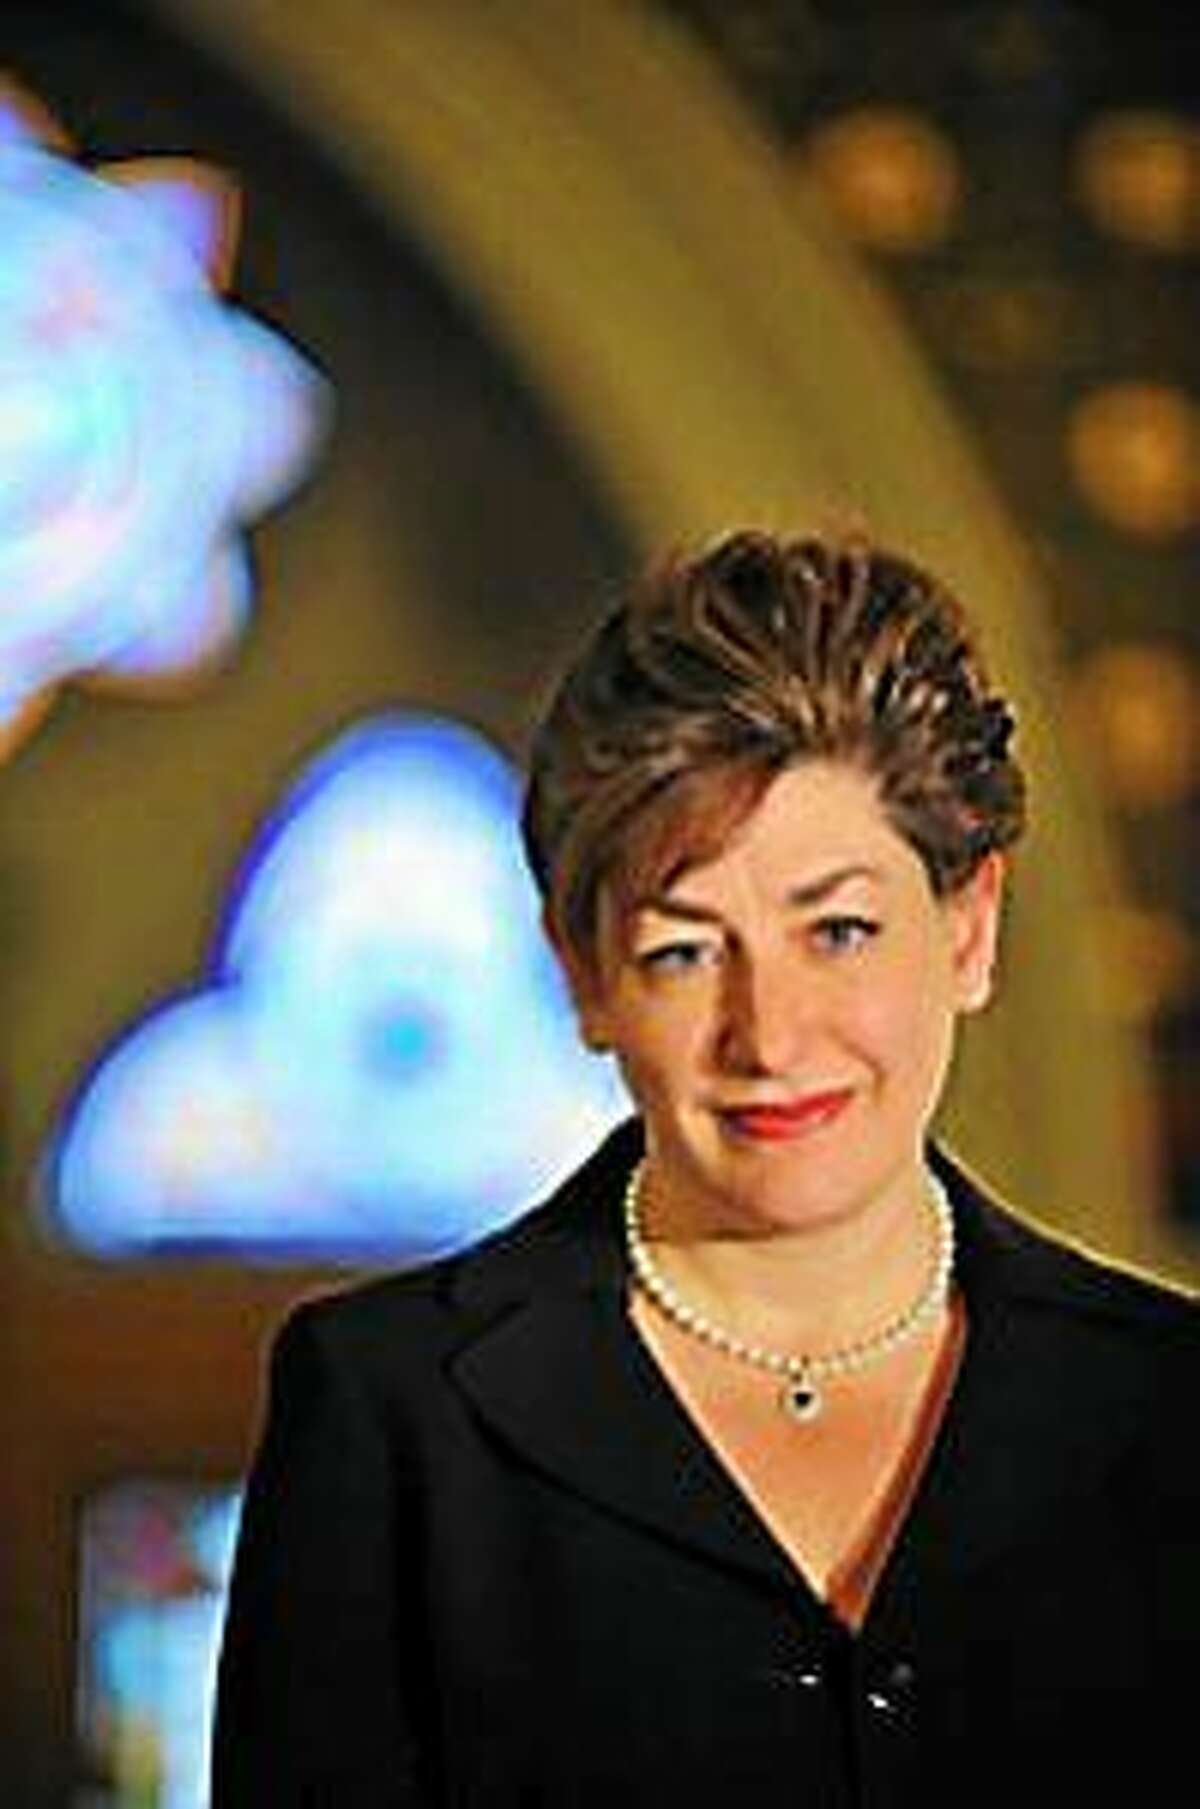 University of Connecticut President Susan Herbst